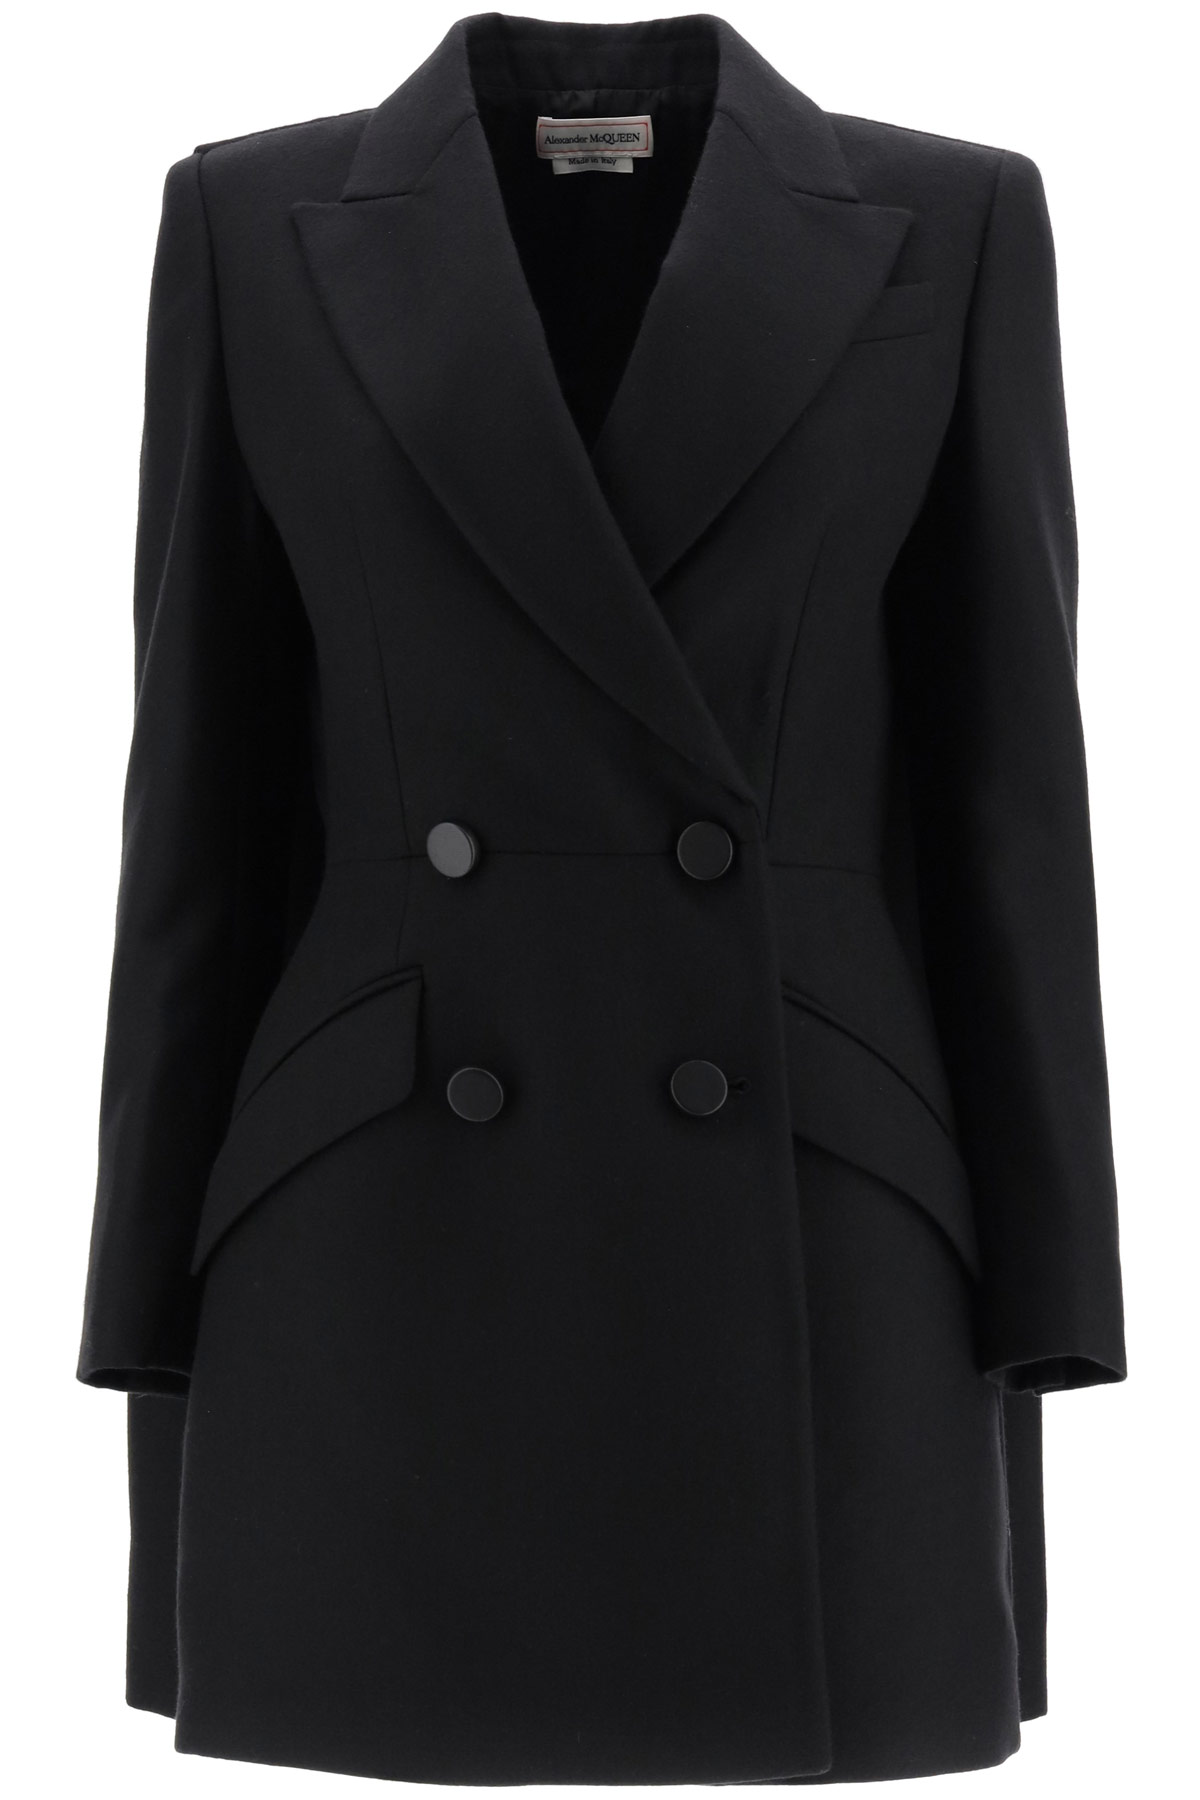 ALEXANDER MCQUEEN WOOL COAT 40 Black Wool